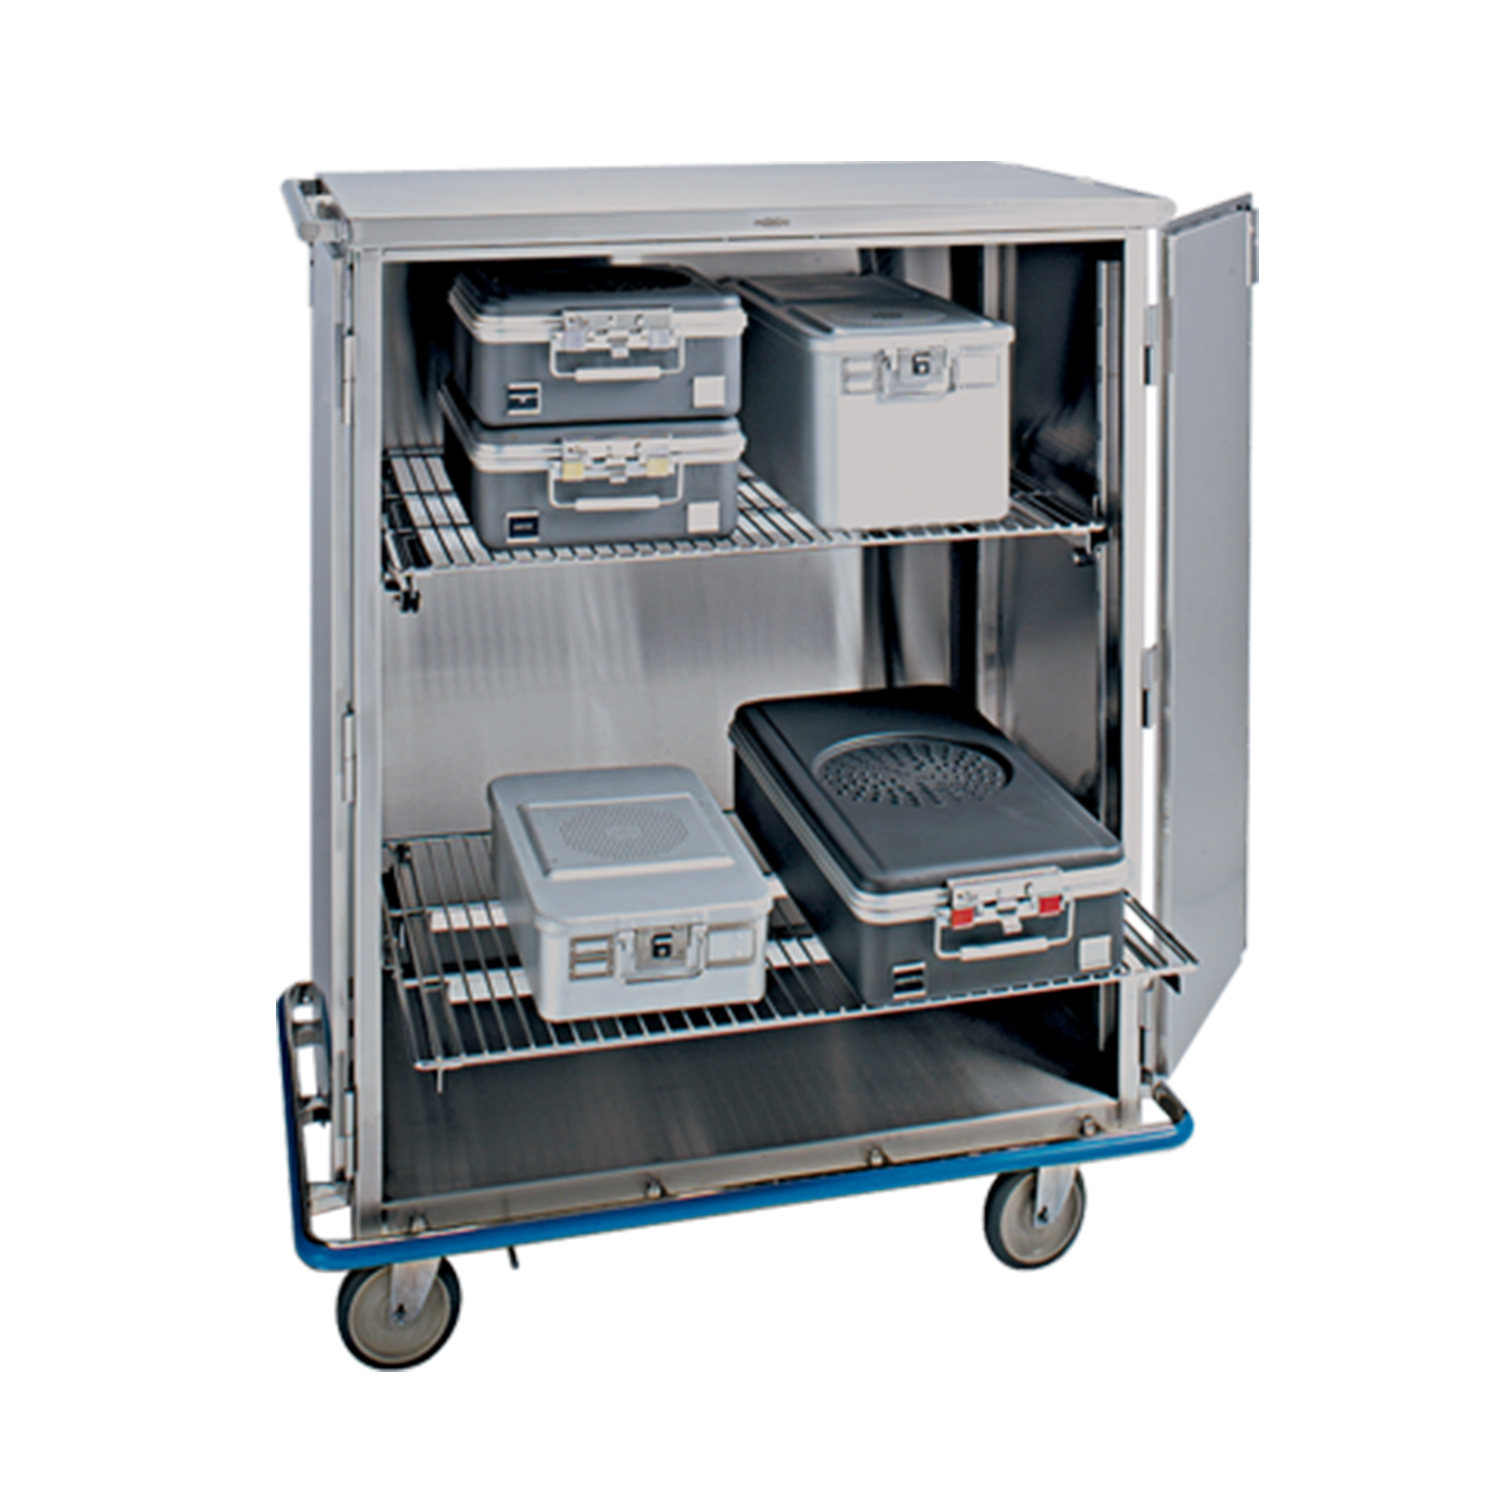 Pedigo CDS-245 Case Cart